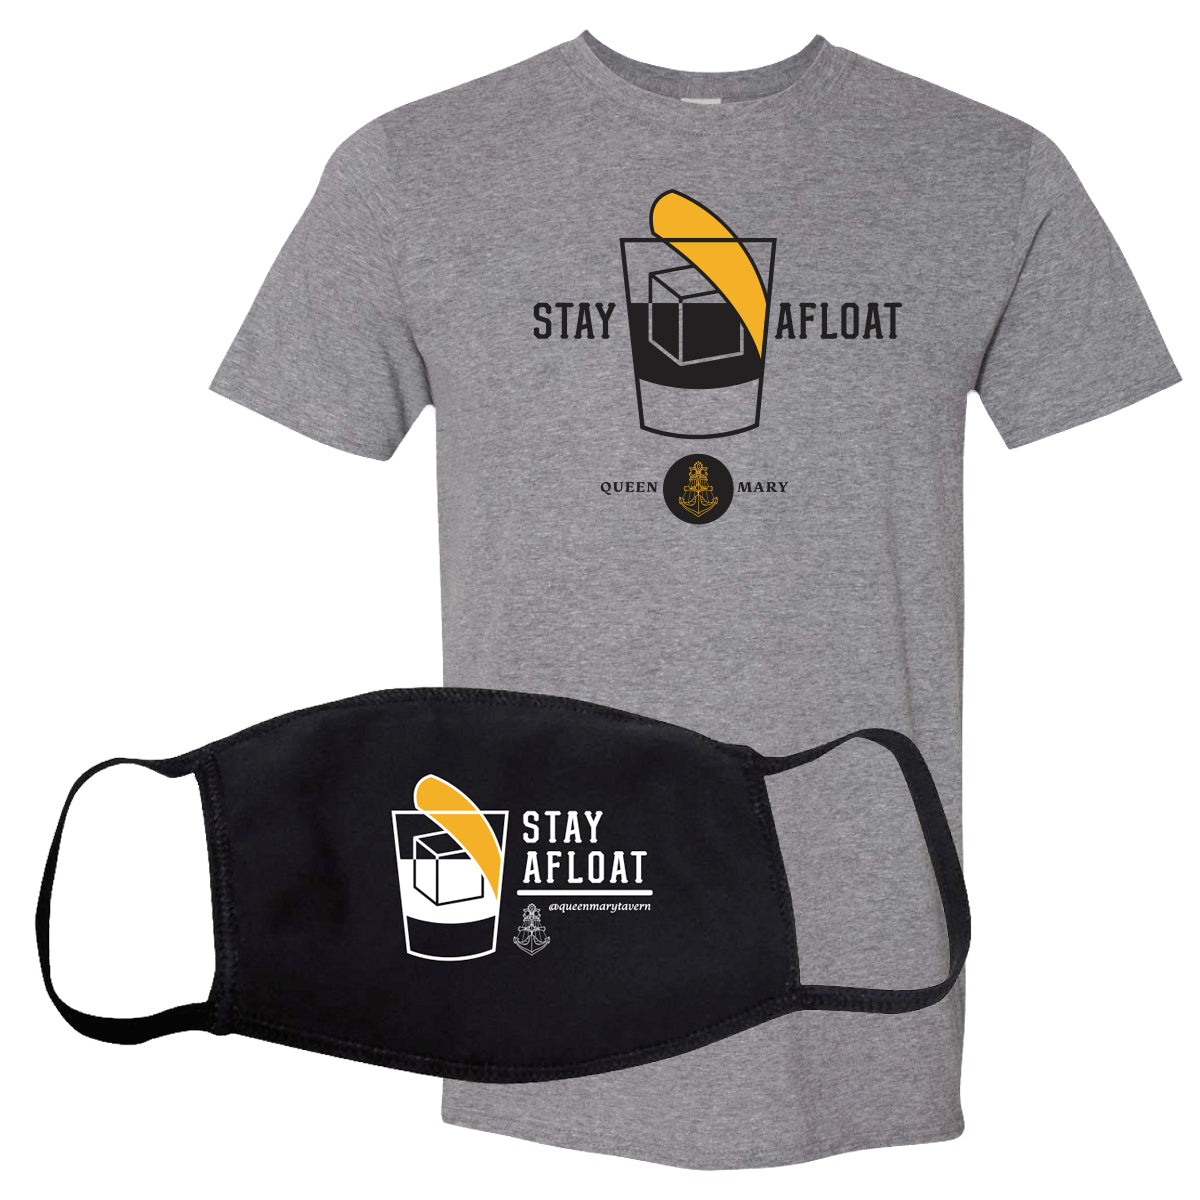 QUEEN MARY TAVERN - TEE & MASK PACK